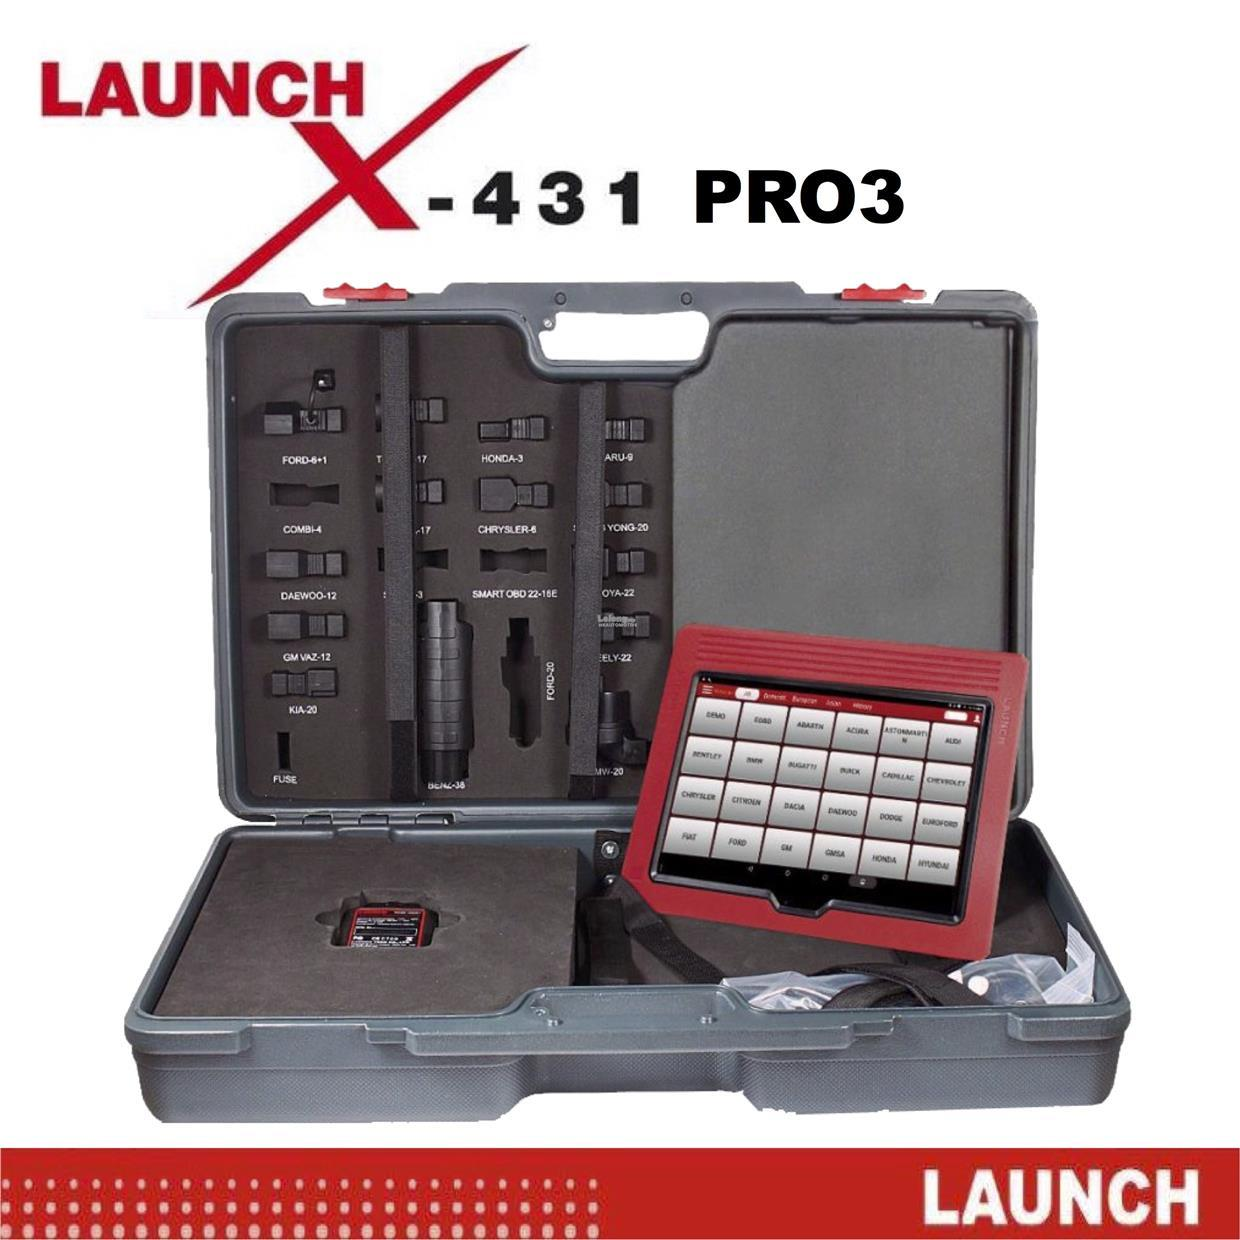 launch-x431-pro3-v3-0-professional-scan-tool-trade-promotion-hkautomotive-1805-31-HKAUTOMOTIVE@10.jpg